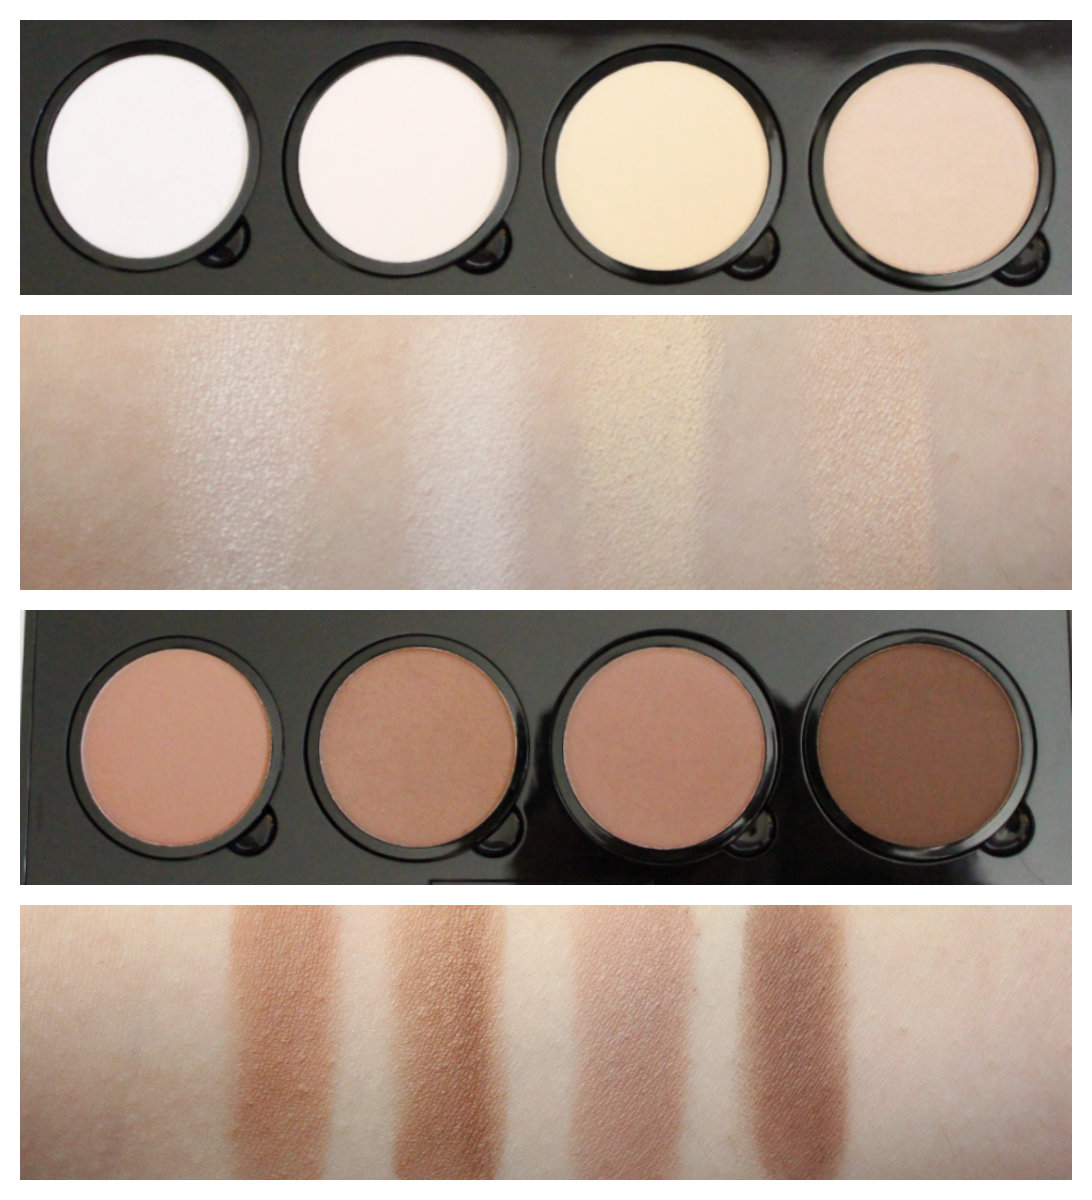 Nyx Highlight And Contour Pro Palette Swatches Beauty Makeup